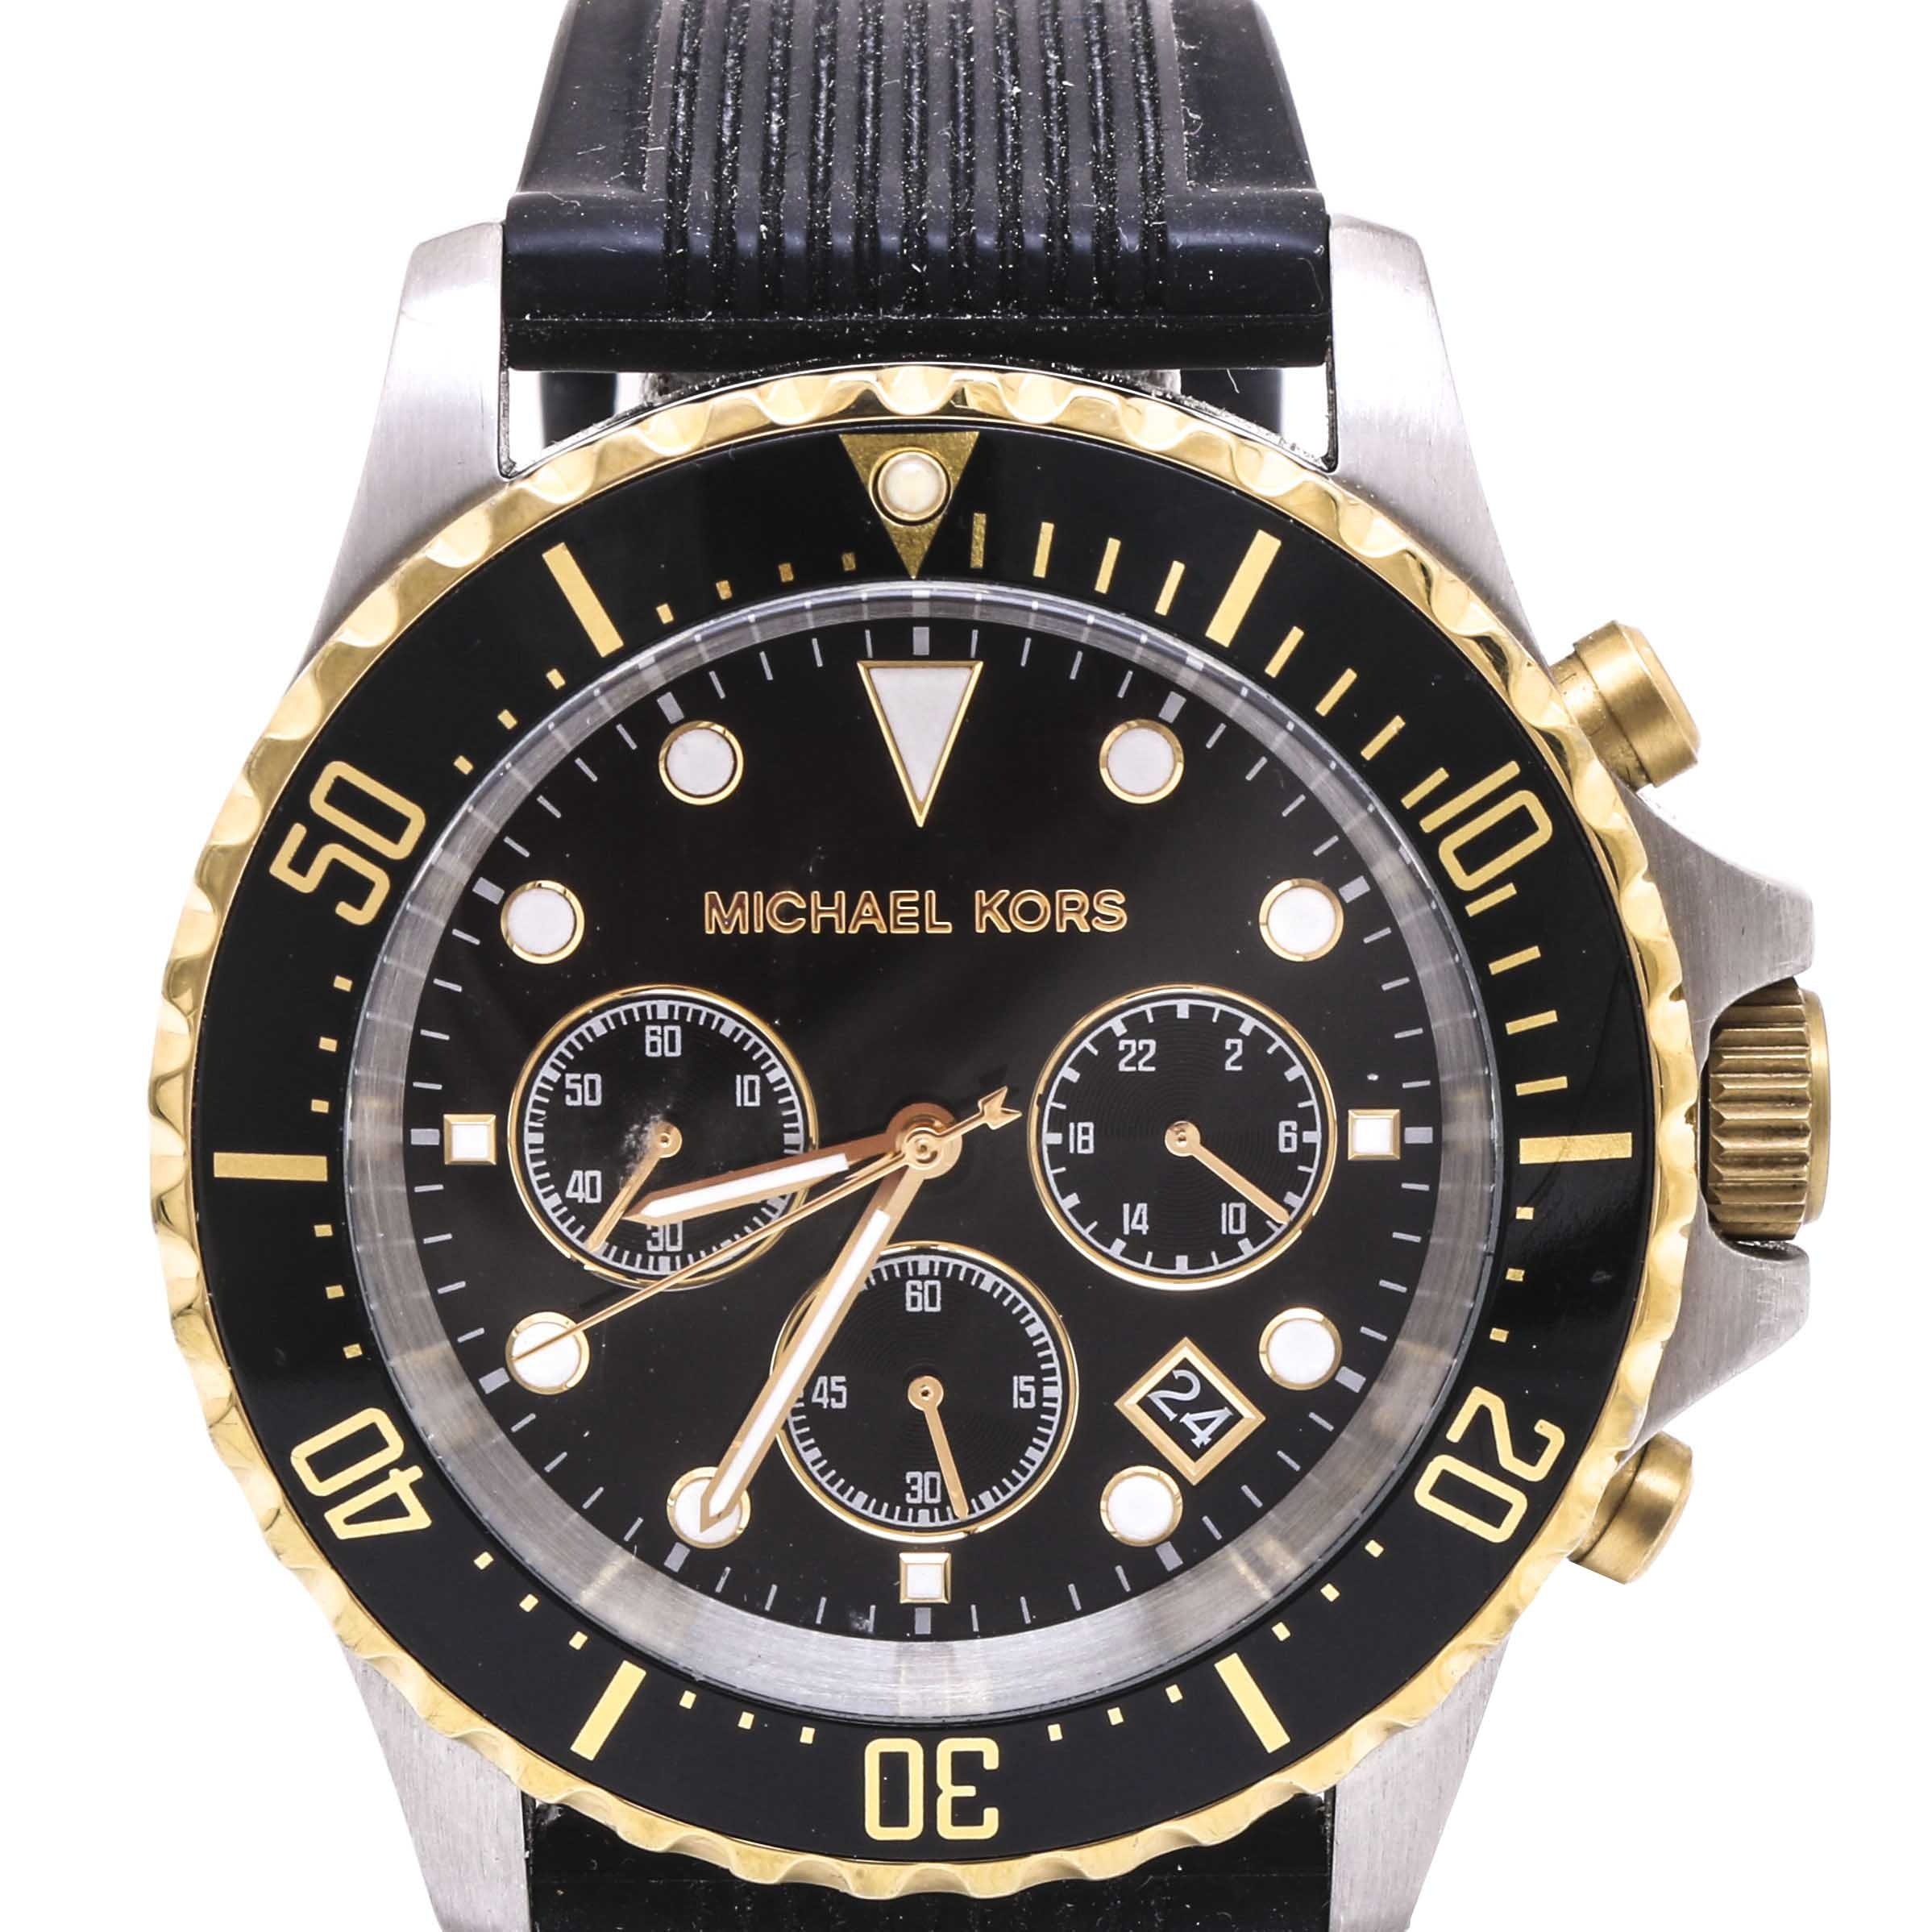 Michael Kors Stainless Steel Black and Gold Tone Wristwatch